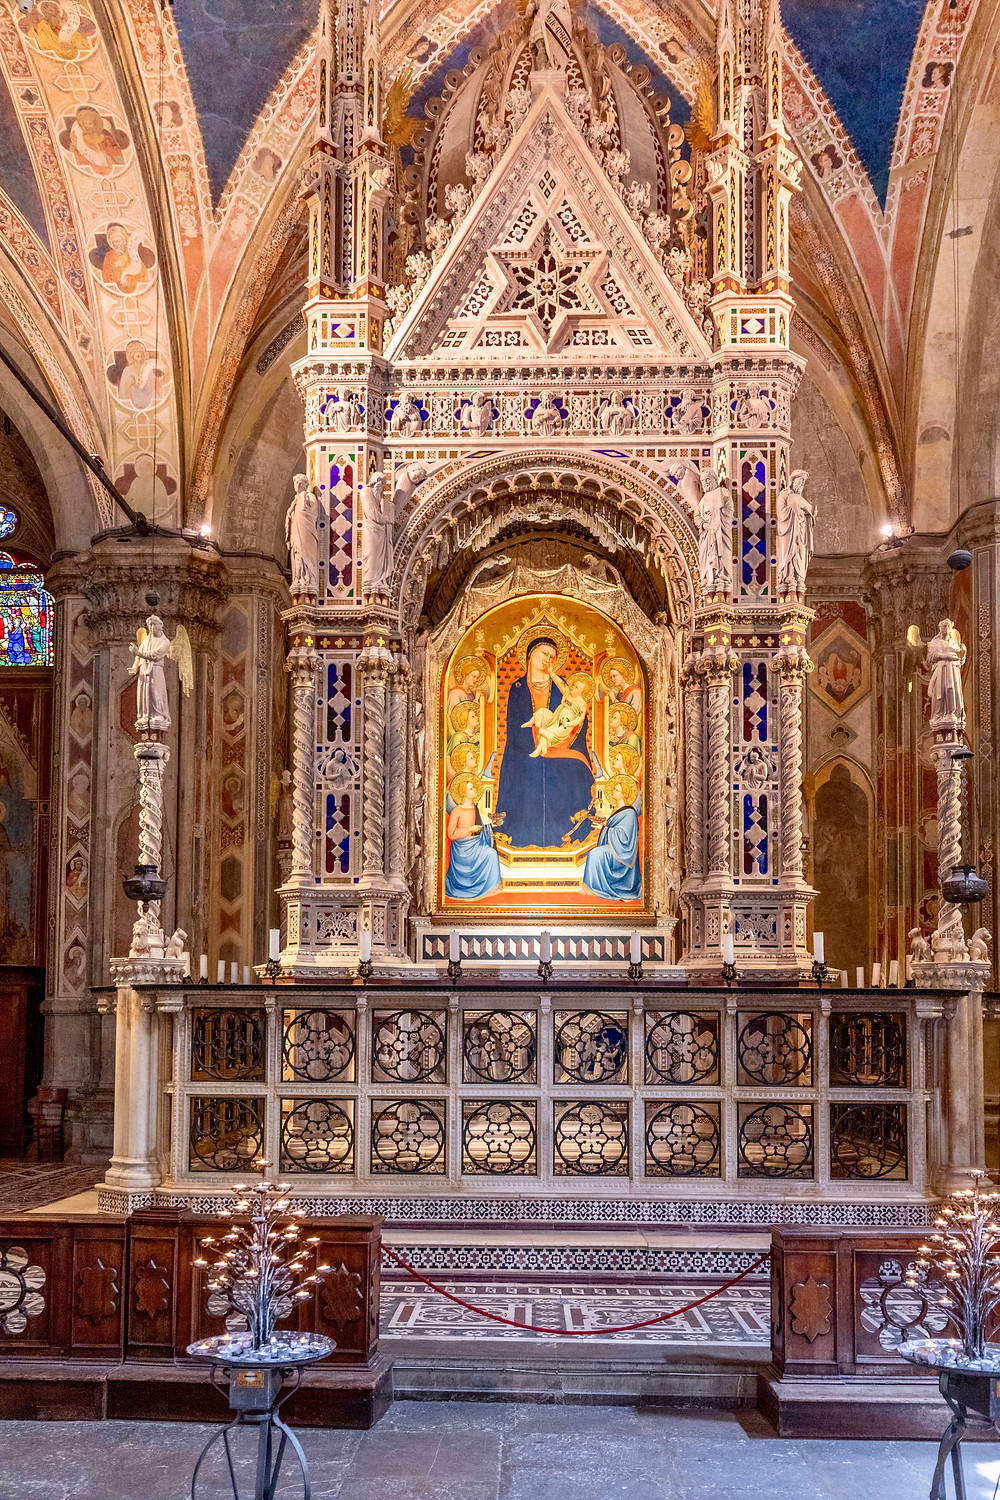 the white marble Tabernacle with the painting of the miraculous madonna